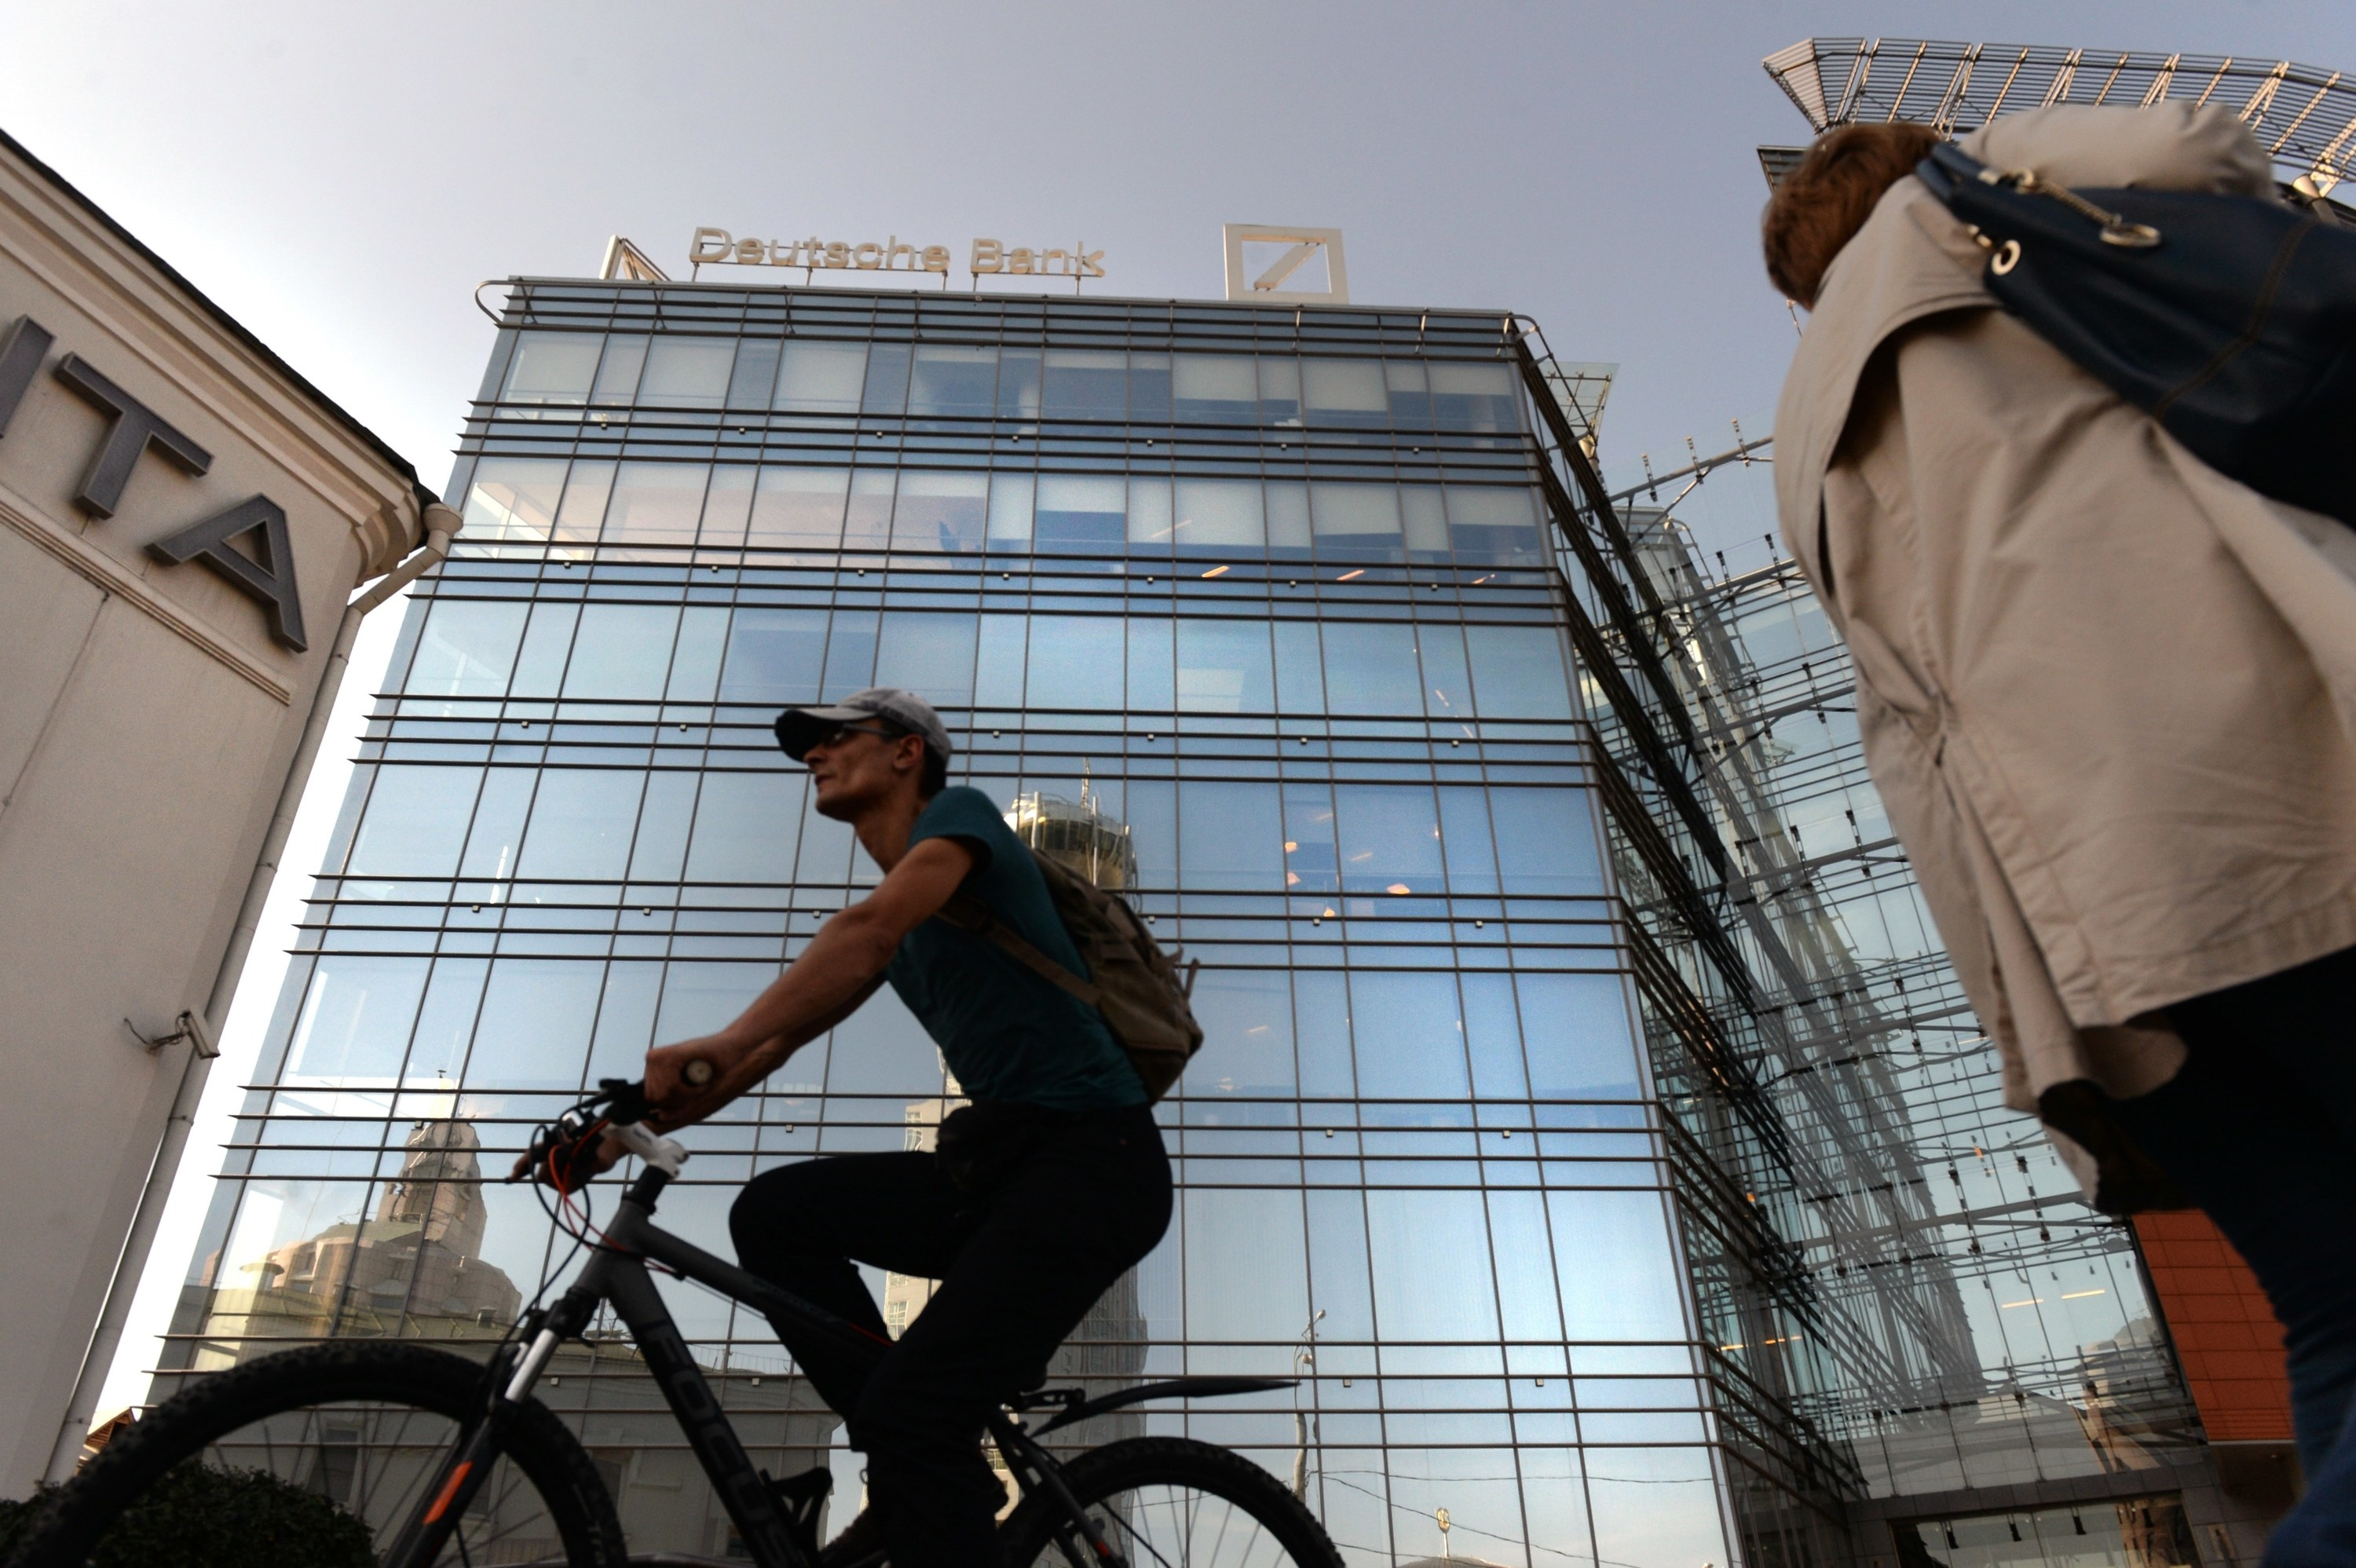 A cyclist rides in front of a towering Deutsche Bank building behind them